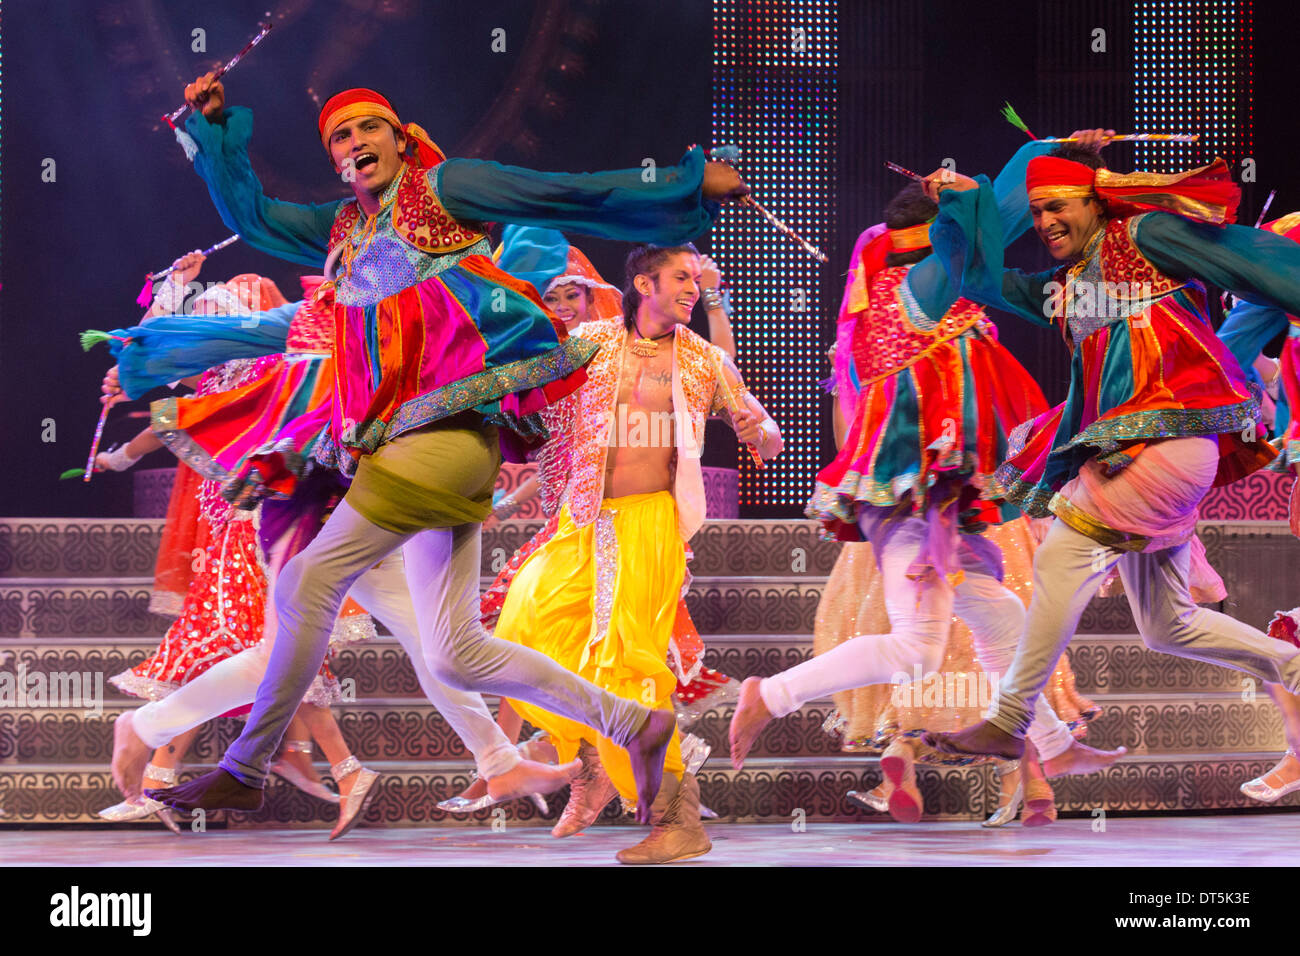 The Merchants of Bollywood Show, Peacock Theatre, London - Stock Image